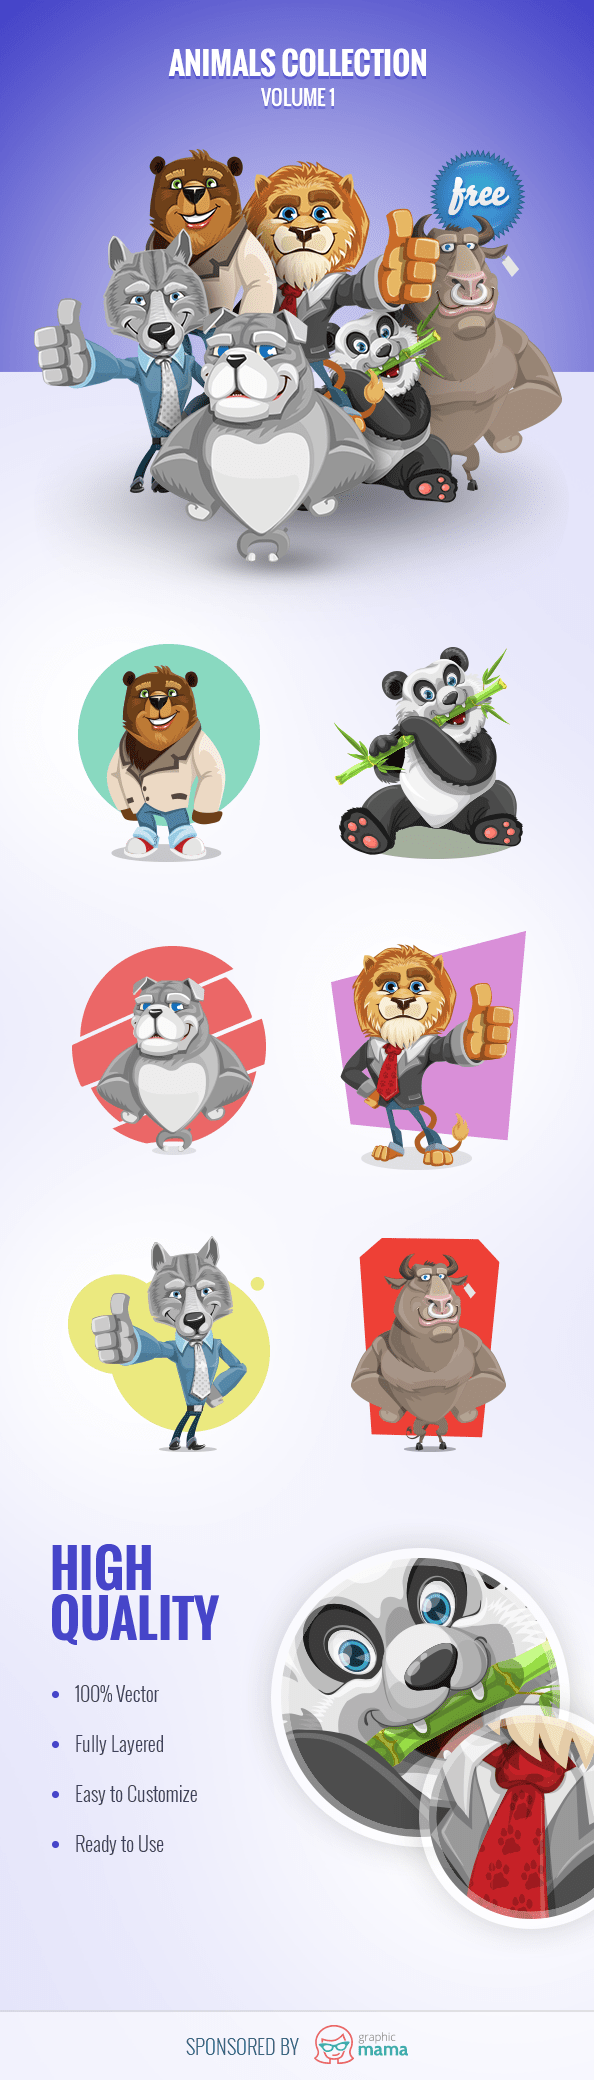 Free_Vector_Animal_Characters